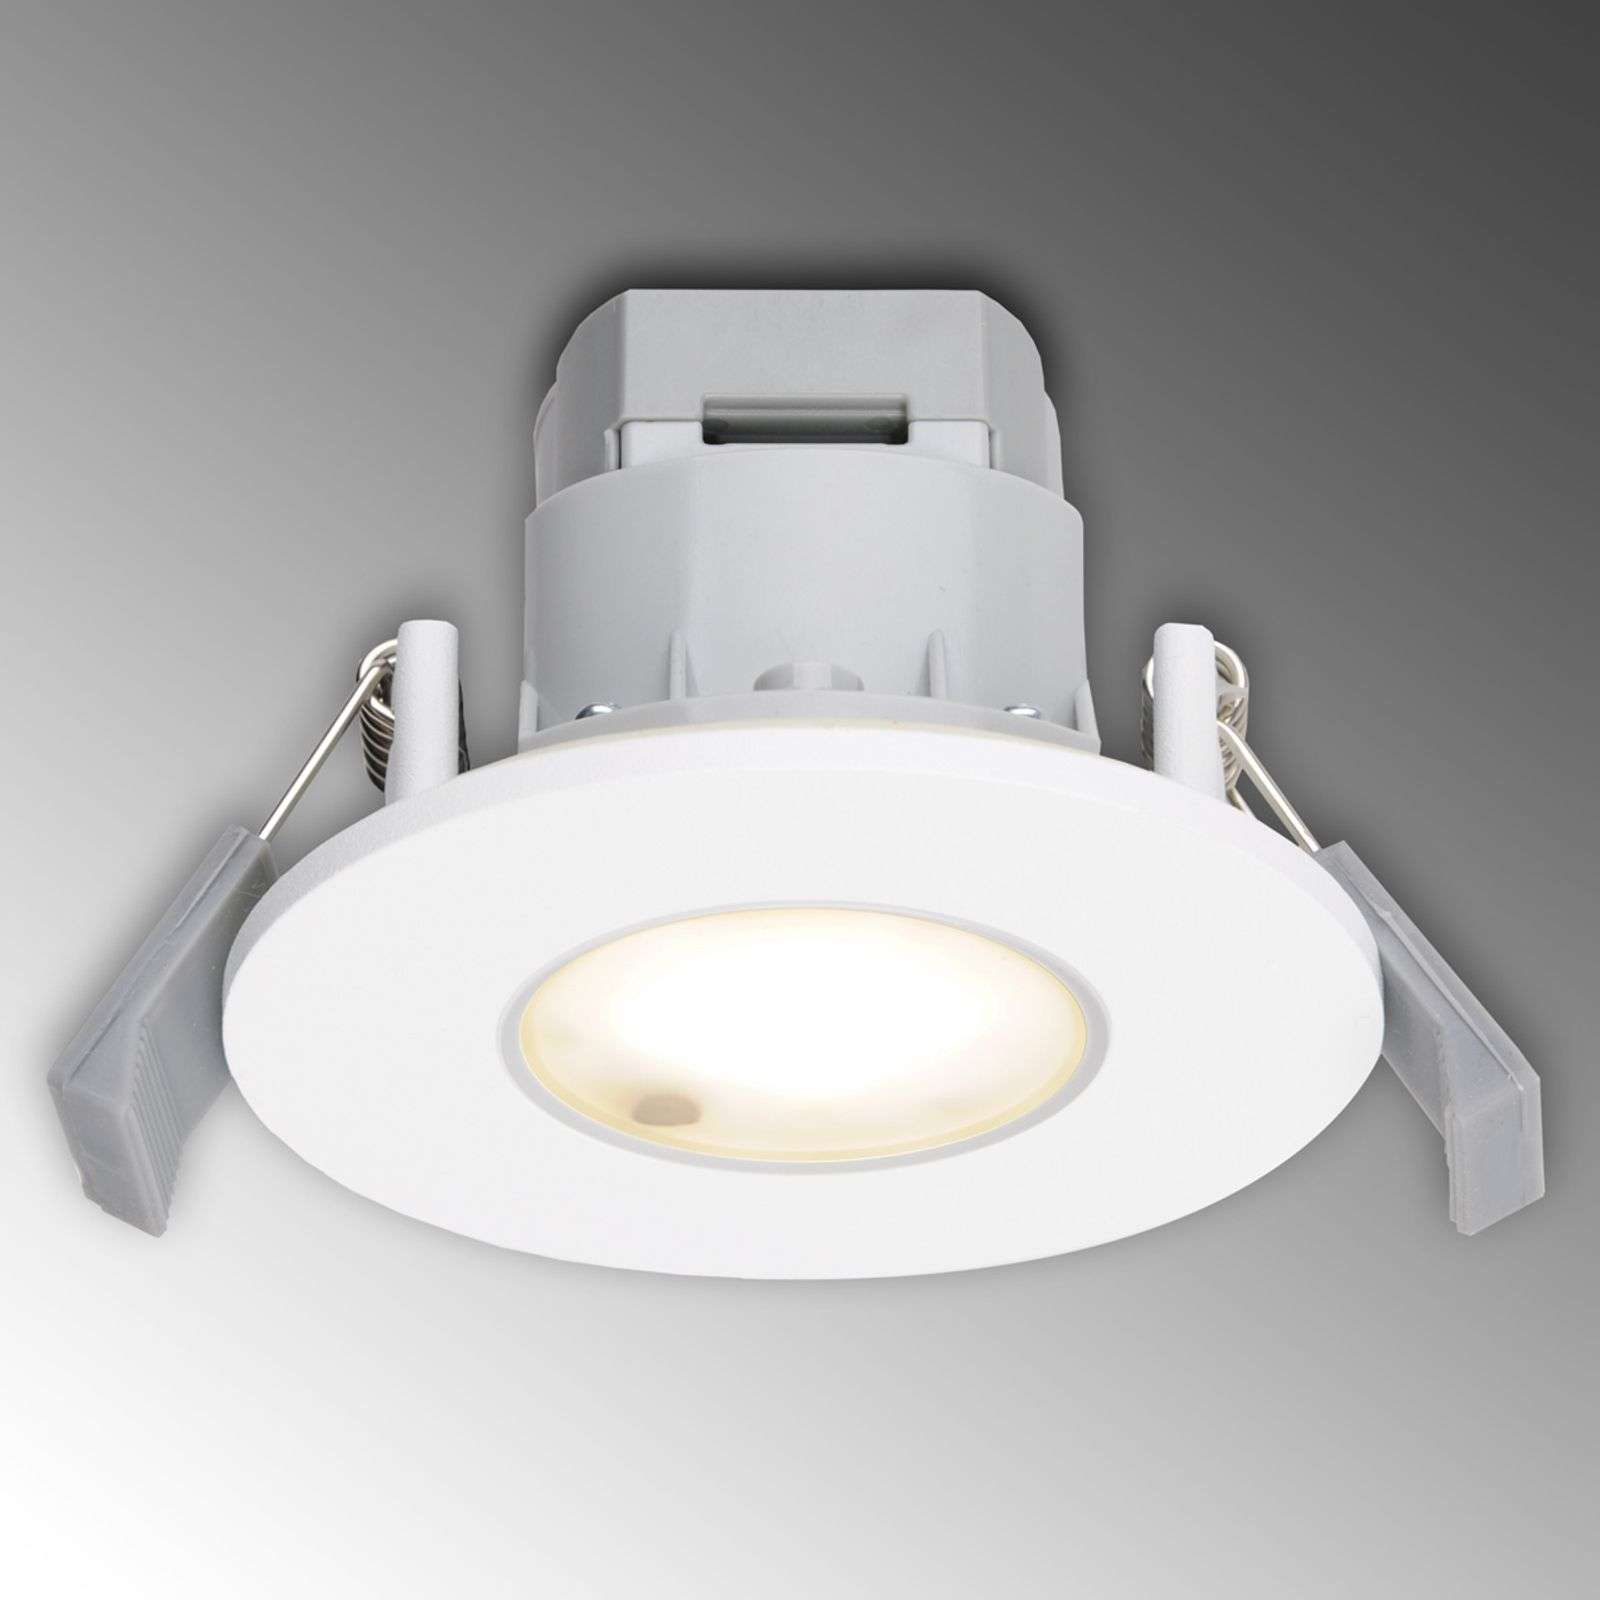 Kimra LED recessed light - IP65